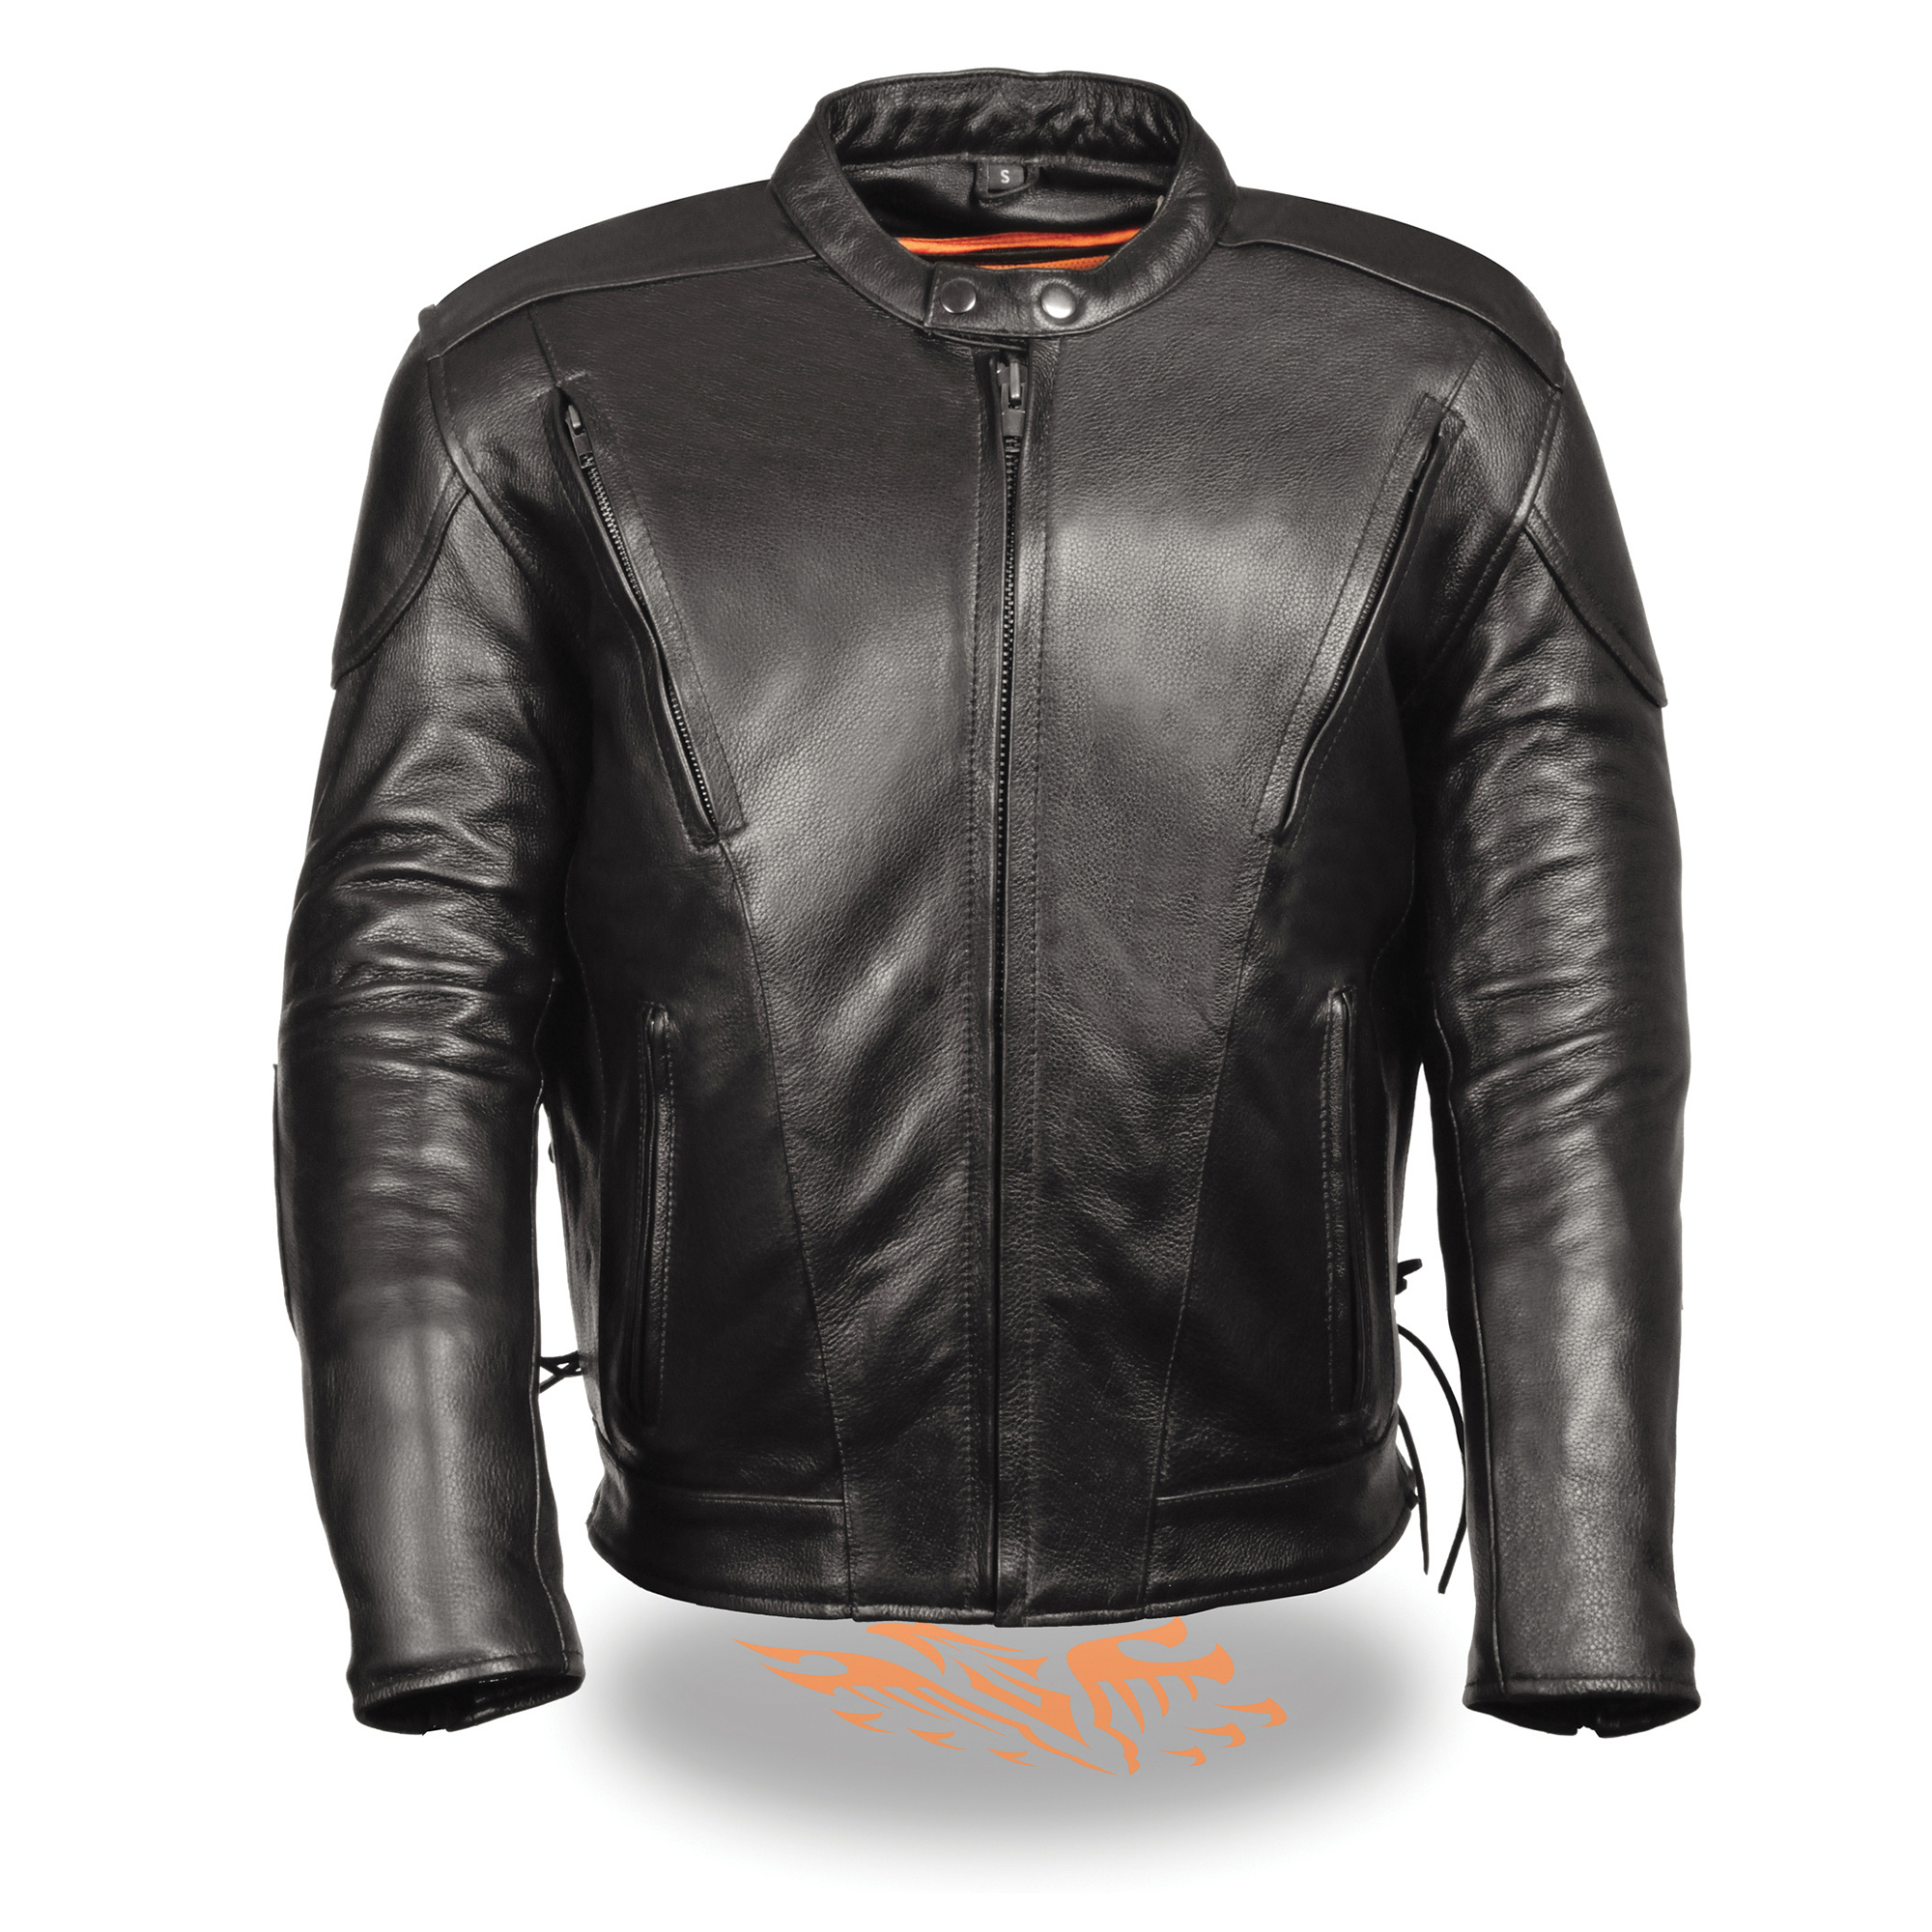 Dynamic Leather - Site - photo #39